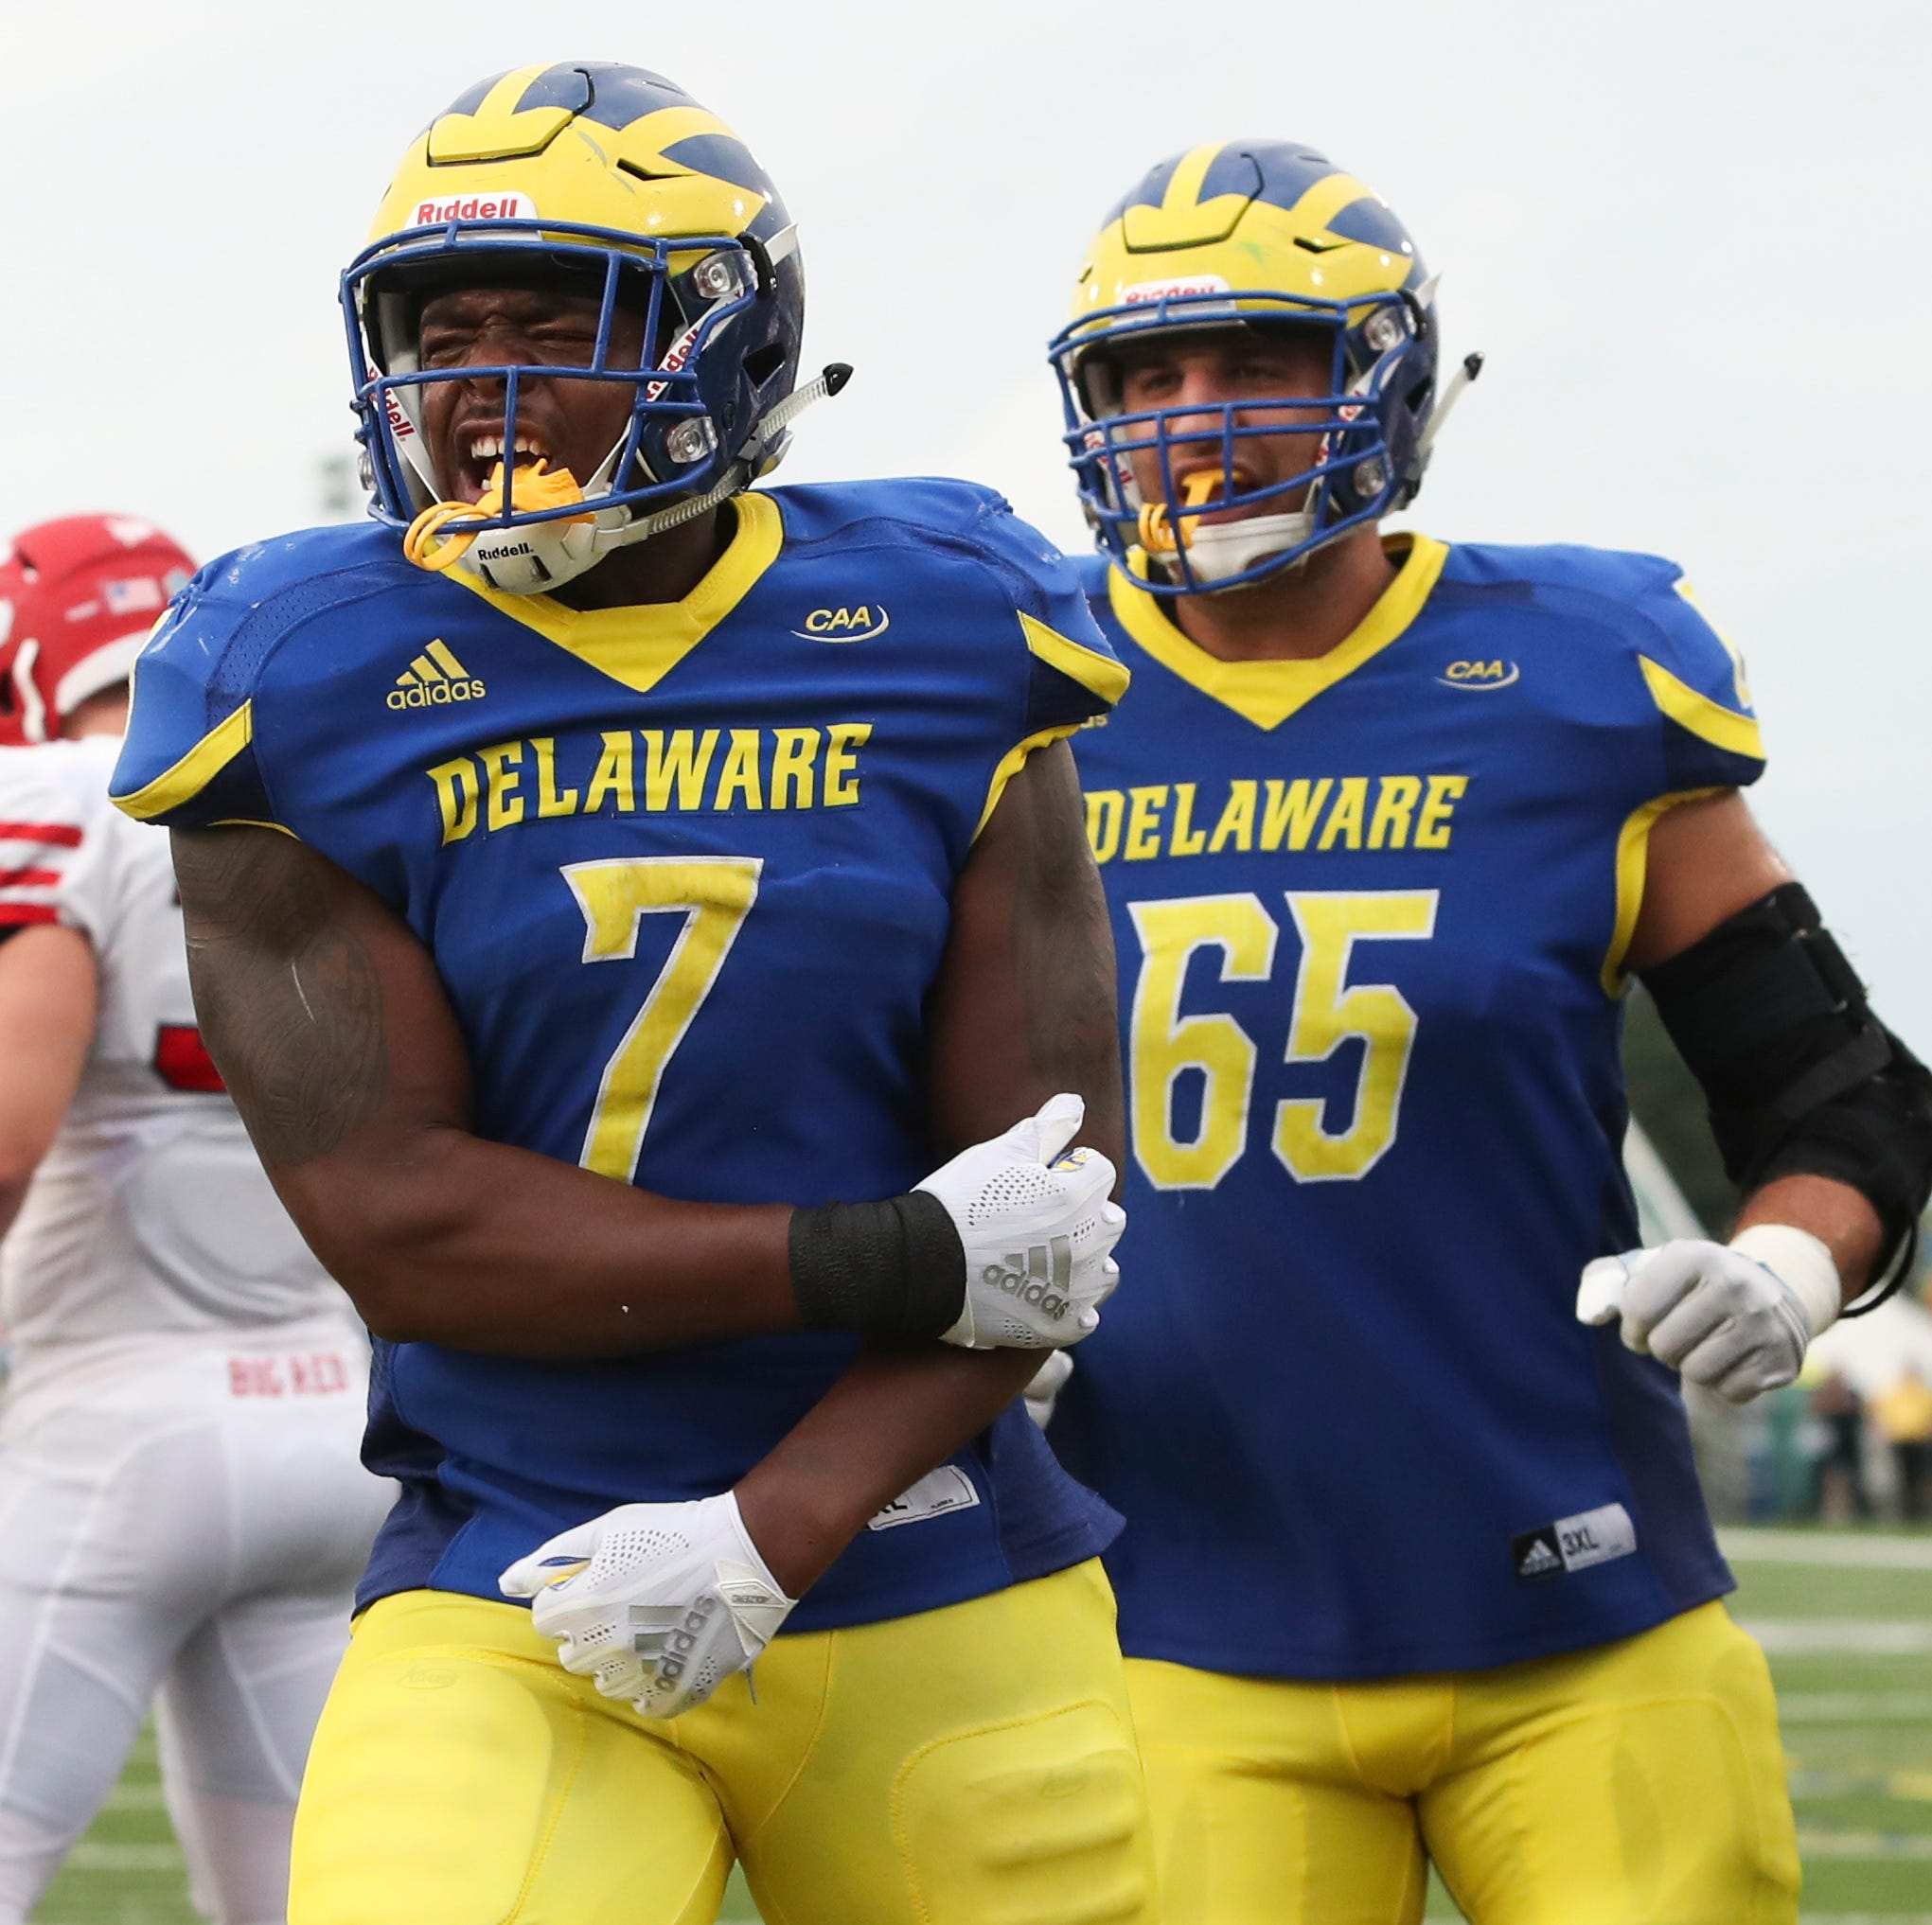 University of Delaware vs. North Dakota State: How to watch